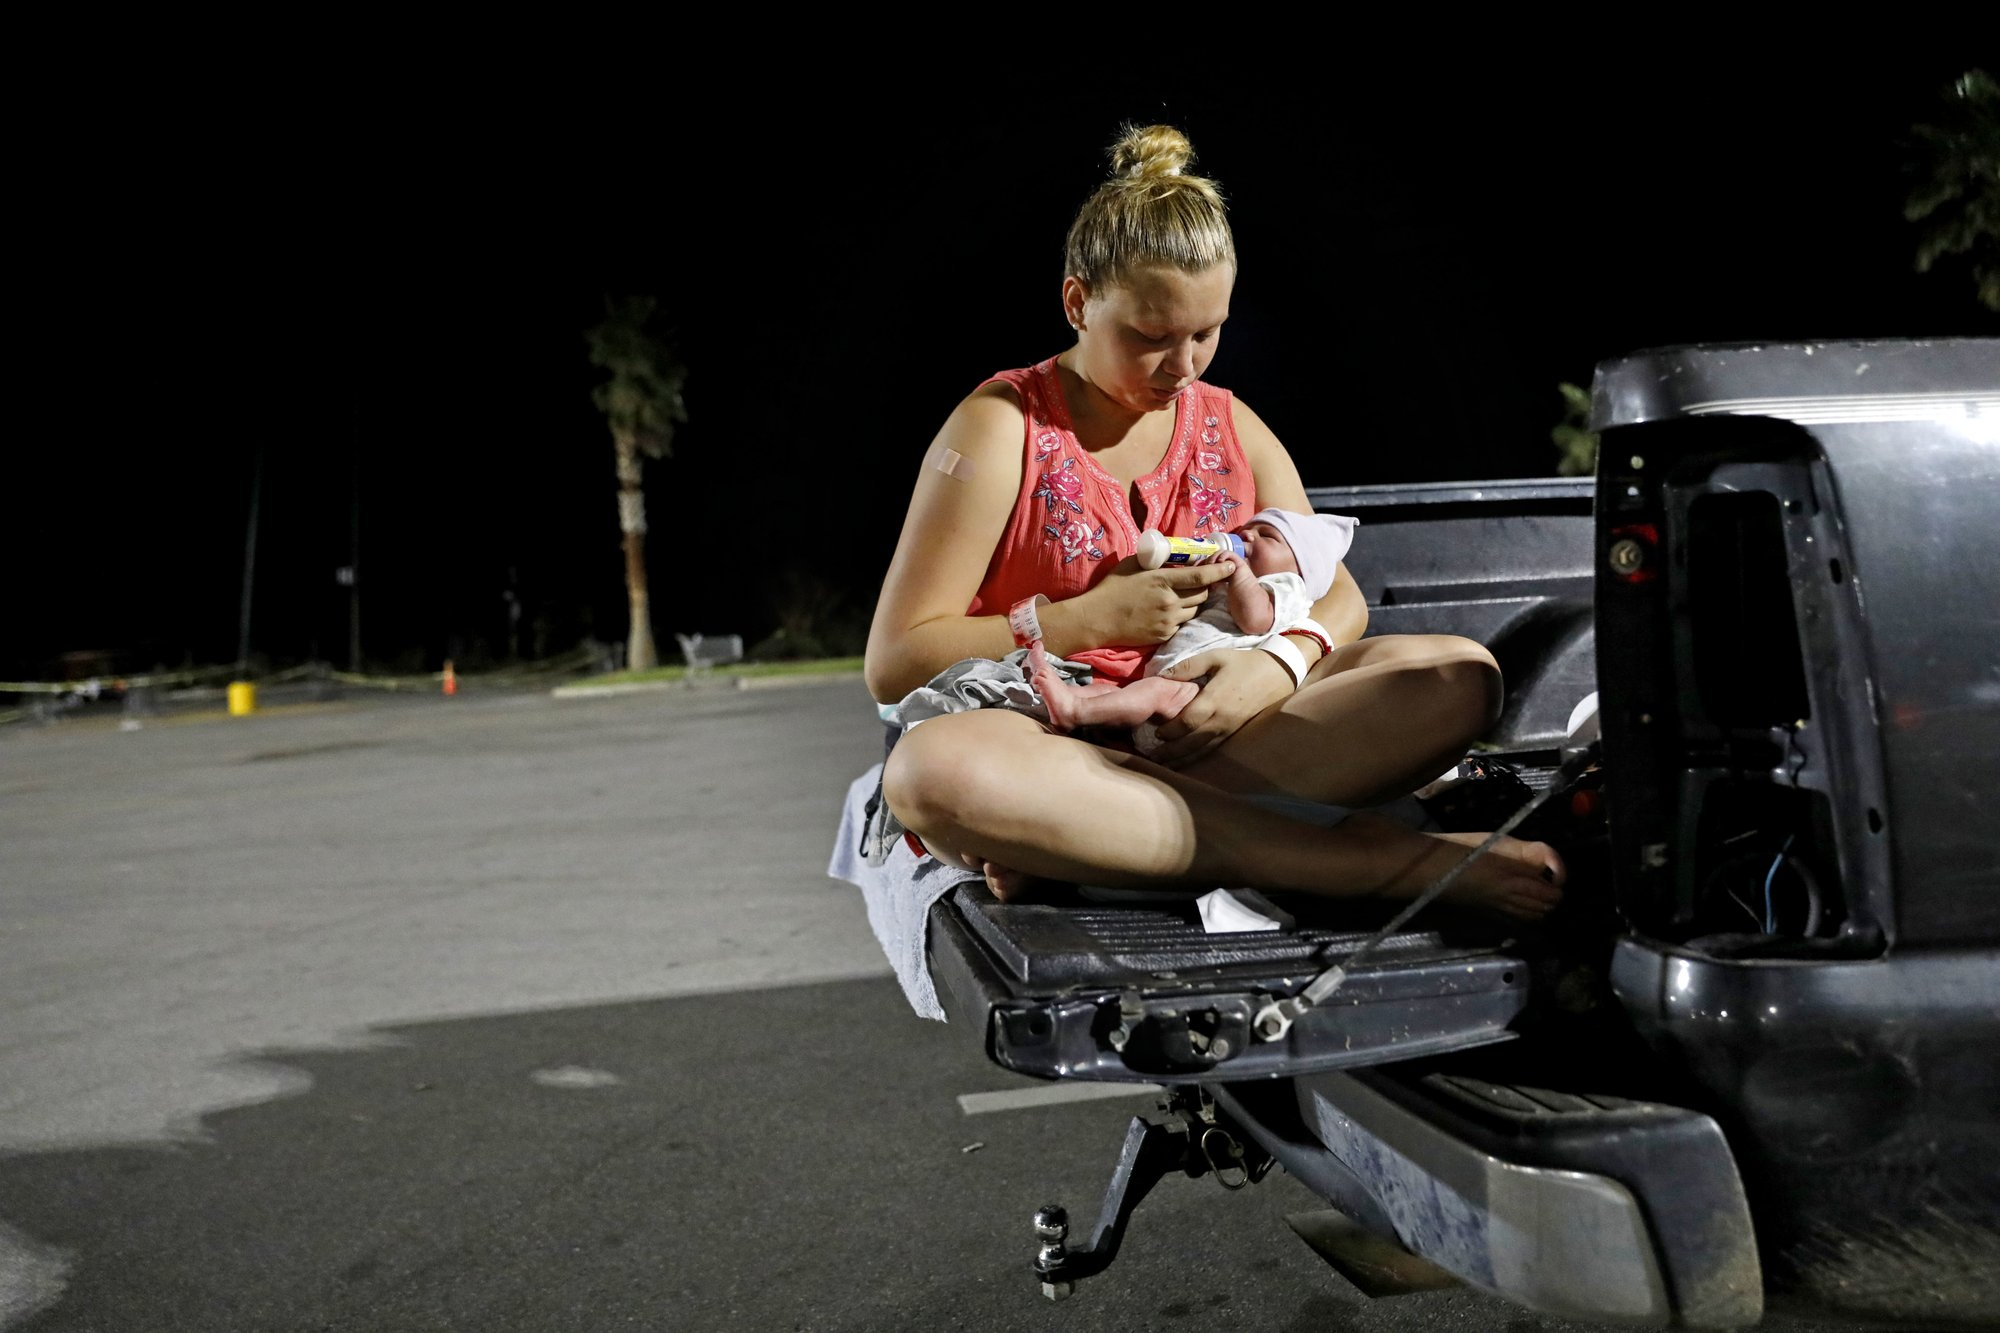 Lorrainda Smith, feeds her two-day-old son Luke out of the back of her pickup truck while preparing to spend the first night out of the hospital with her newborn and husband Wilmer Capps in a parking lot in Panama City, Fla., Monday, Oct. 15, 2018, as their home was badly damaged from Hurricane Michael. (AP Photo/David Goldman)